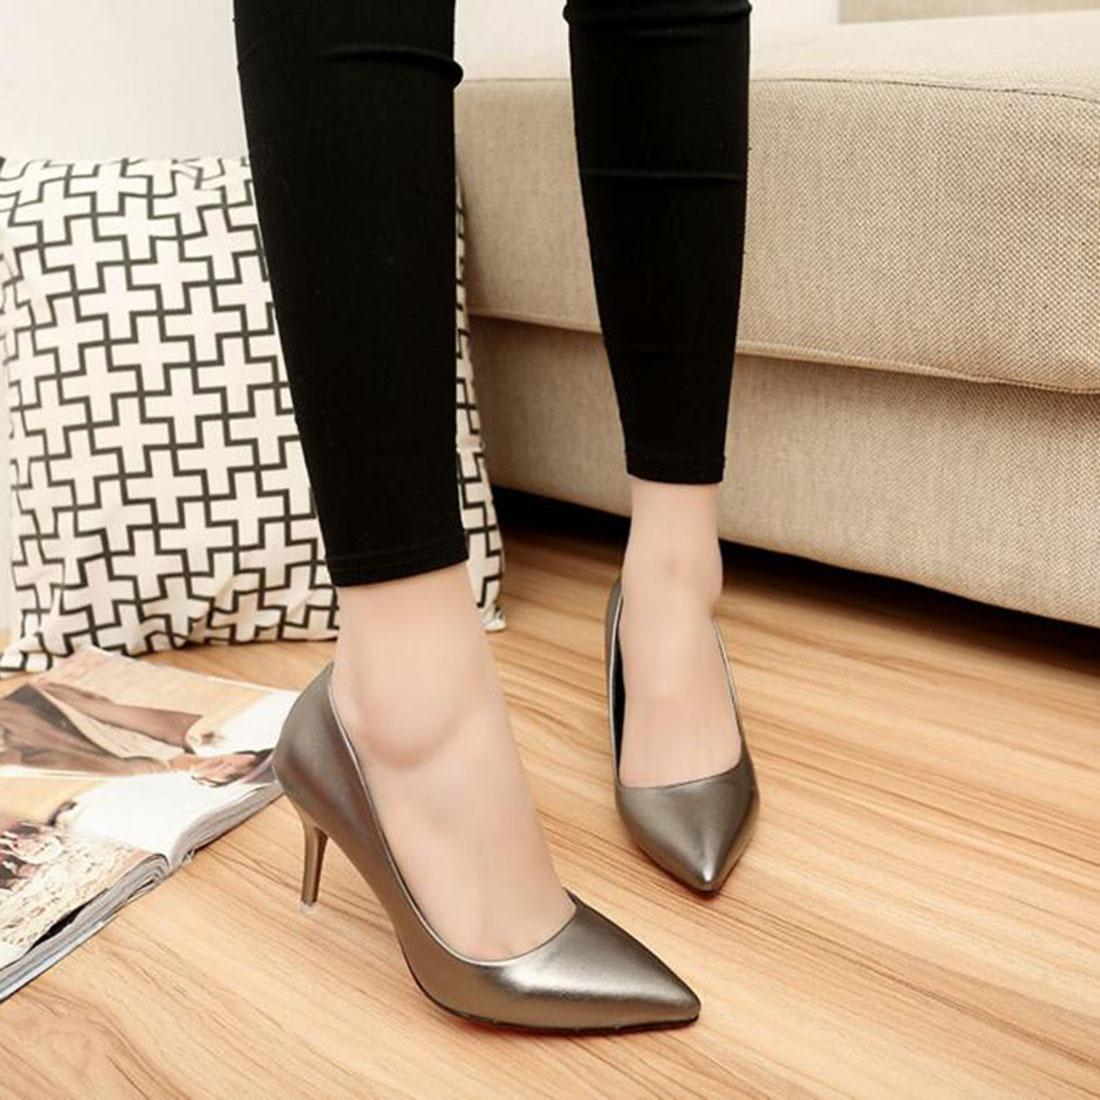 ad3fec6889 Dress Shoes New Stiletto Heels Ladeis Women Pumps Fashion Leather Work  Pointy Fine With Casual Classic Black High Heels Office Lady Men Sandals  Best Shoes ...